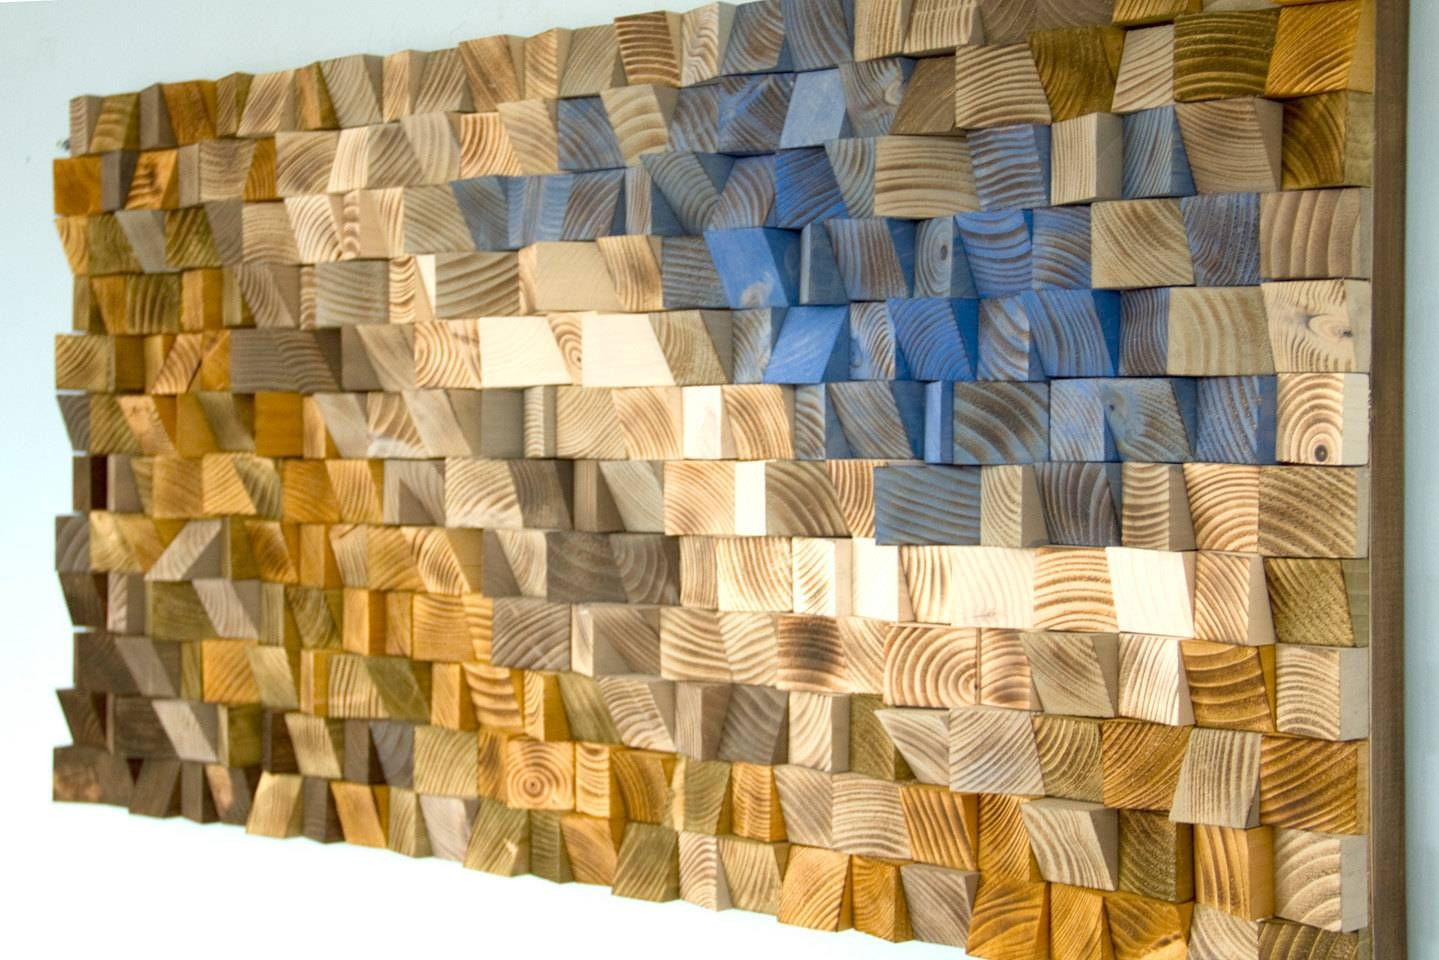 Reclaimed Wood Wall Art, Wood Mosaic, Geometric Art, Wood Wall Art Inside Most Recent Wood Wall Art (Gallery 10 of 25)